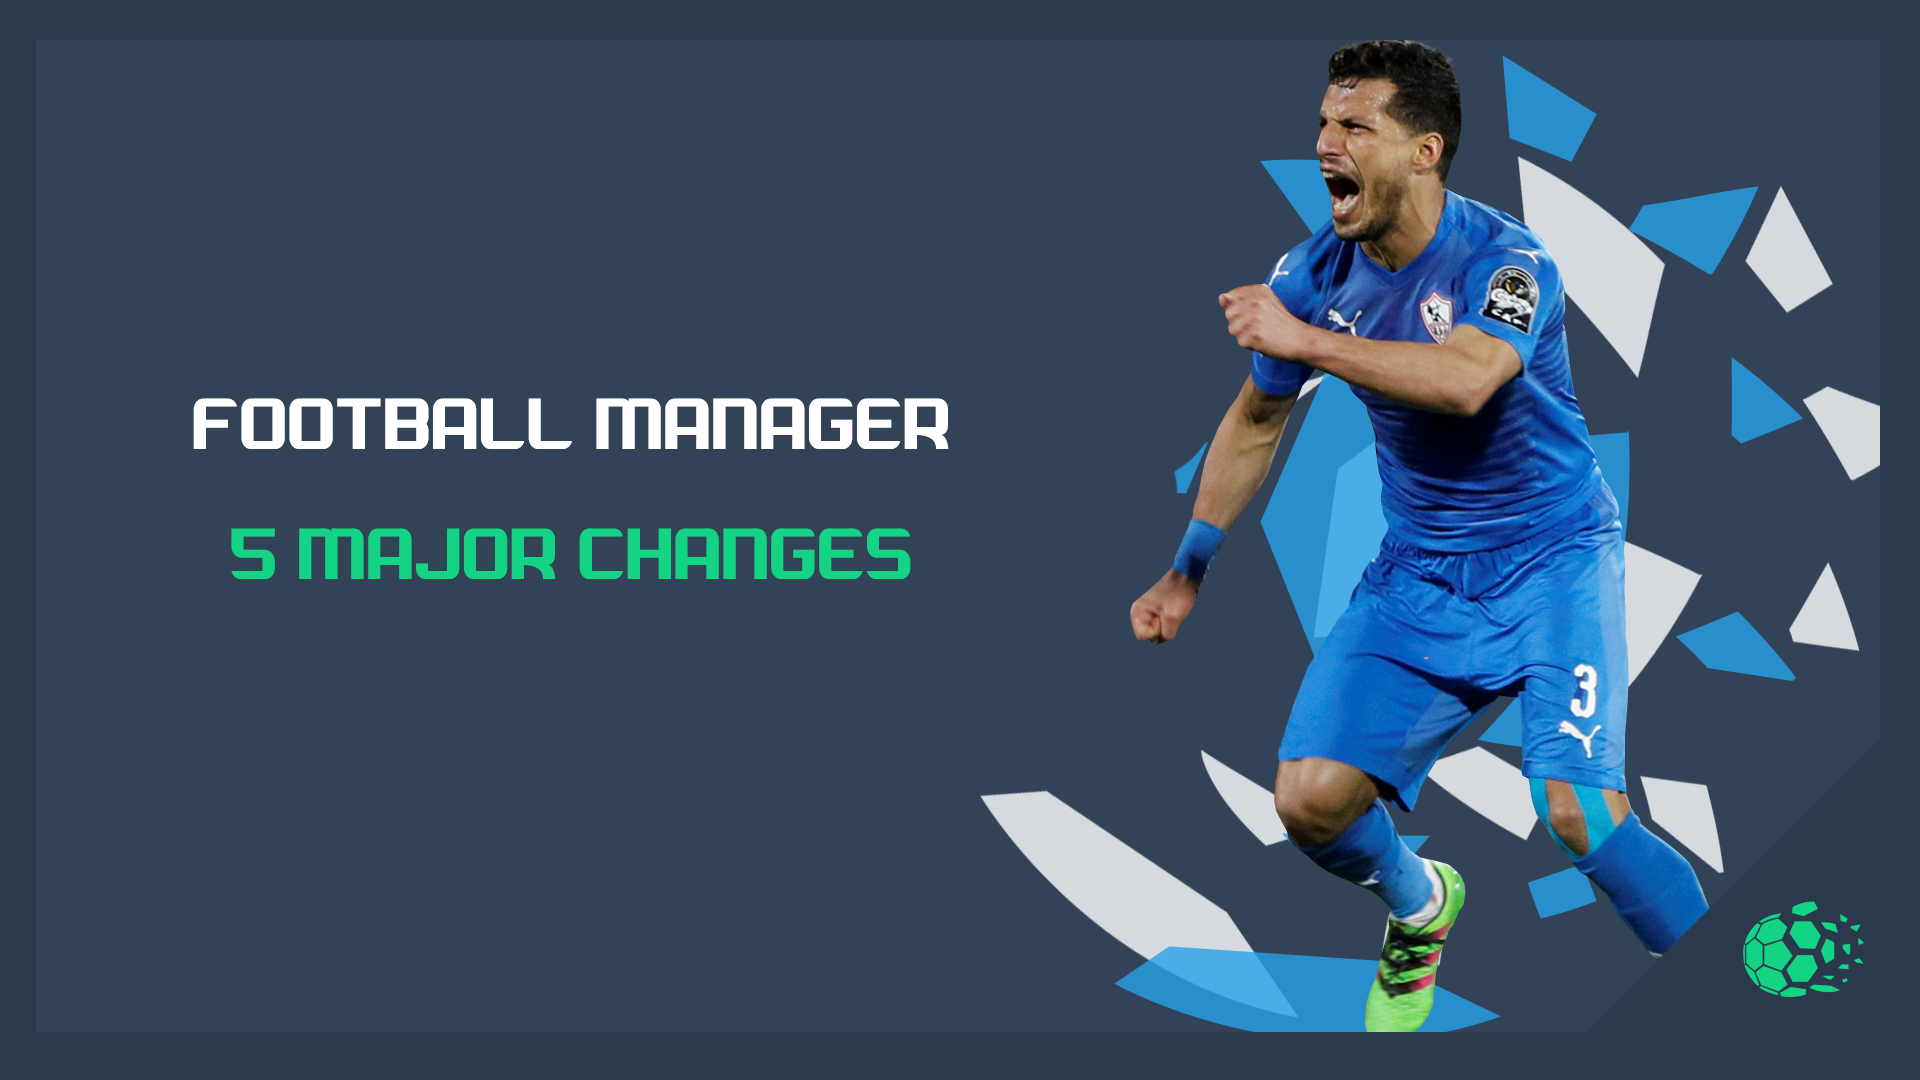 """""""FM20Football Manager - 5 Major Changes"""" feature image"""